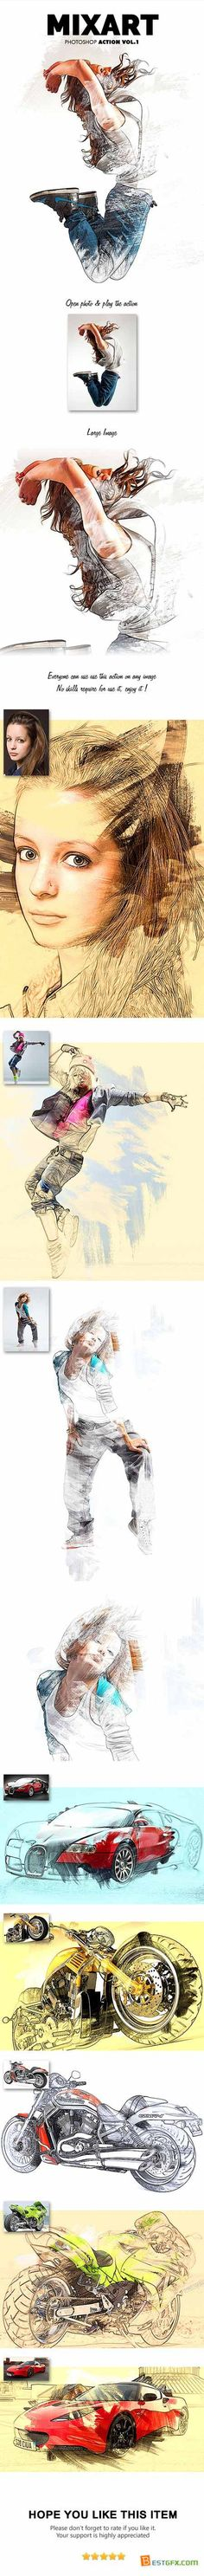 Graphicriver MixArt Photoshop Action Vol.1 12058155